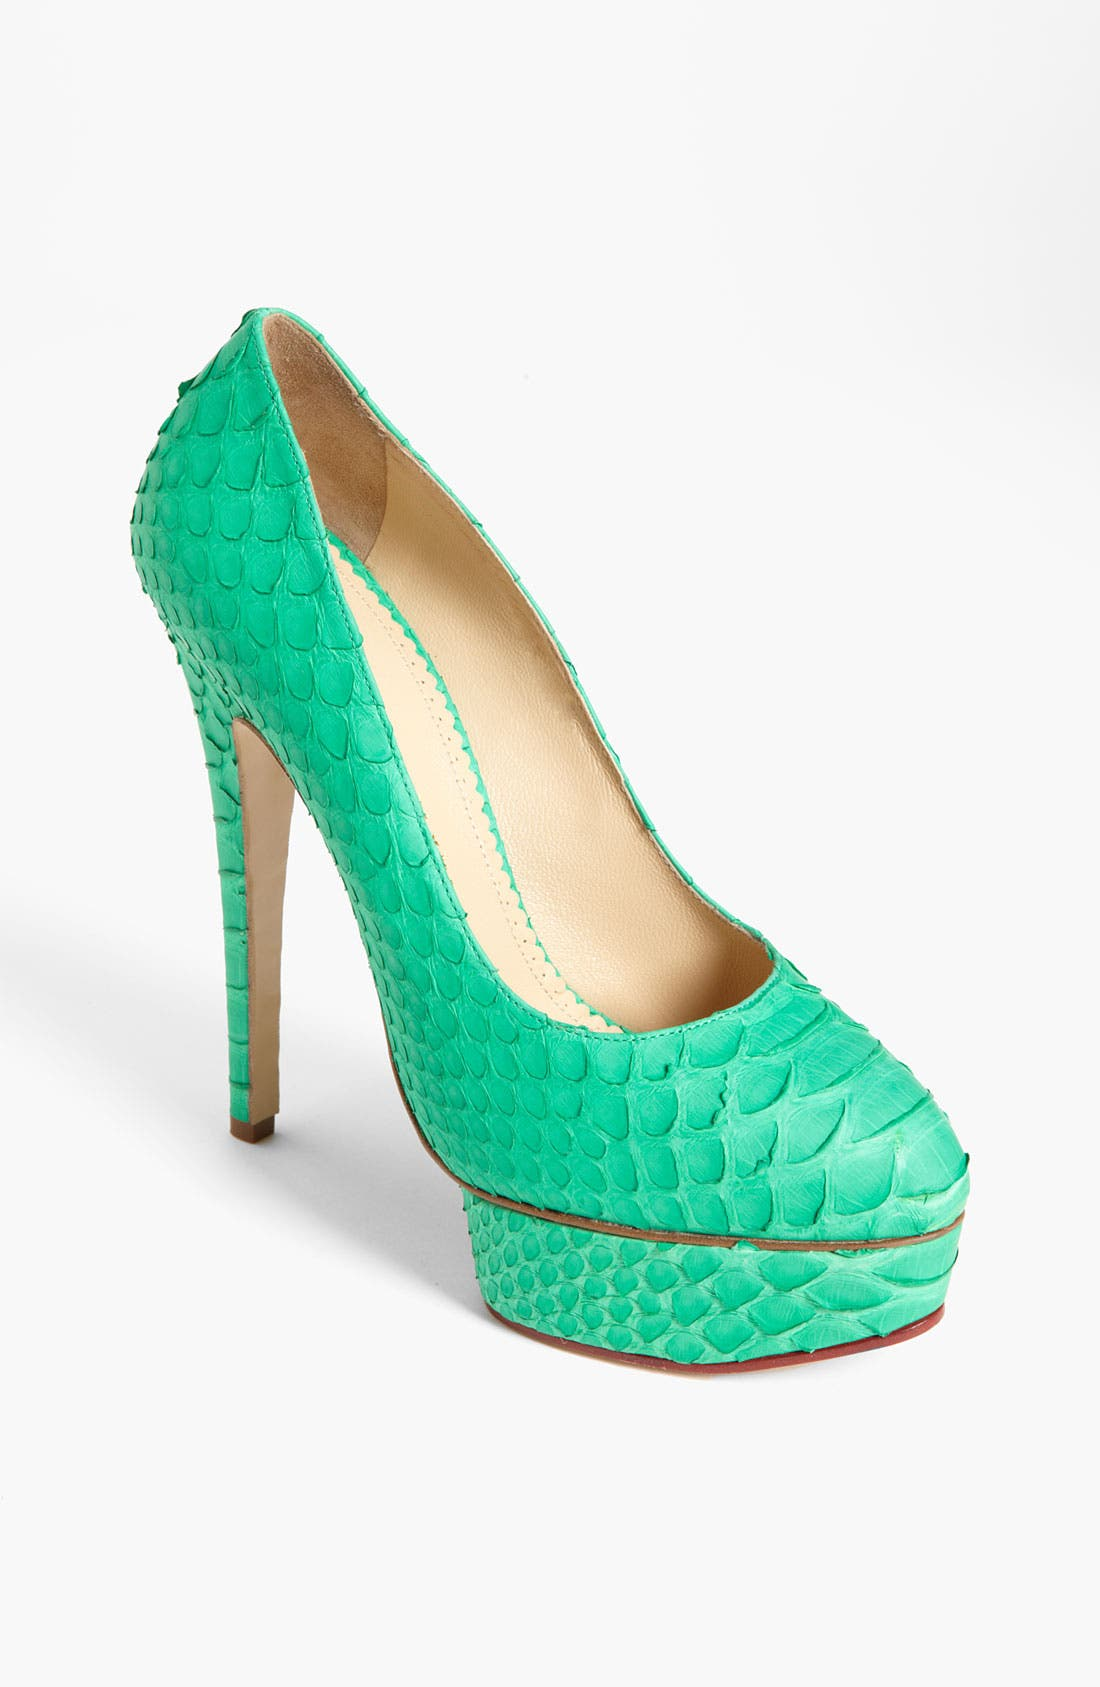 Alternate Image 1 Selected - Charlotte Olympia 'Priscilla' Genuine Python Pump